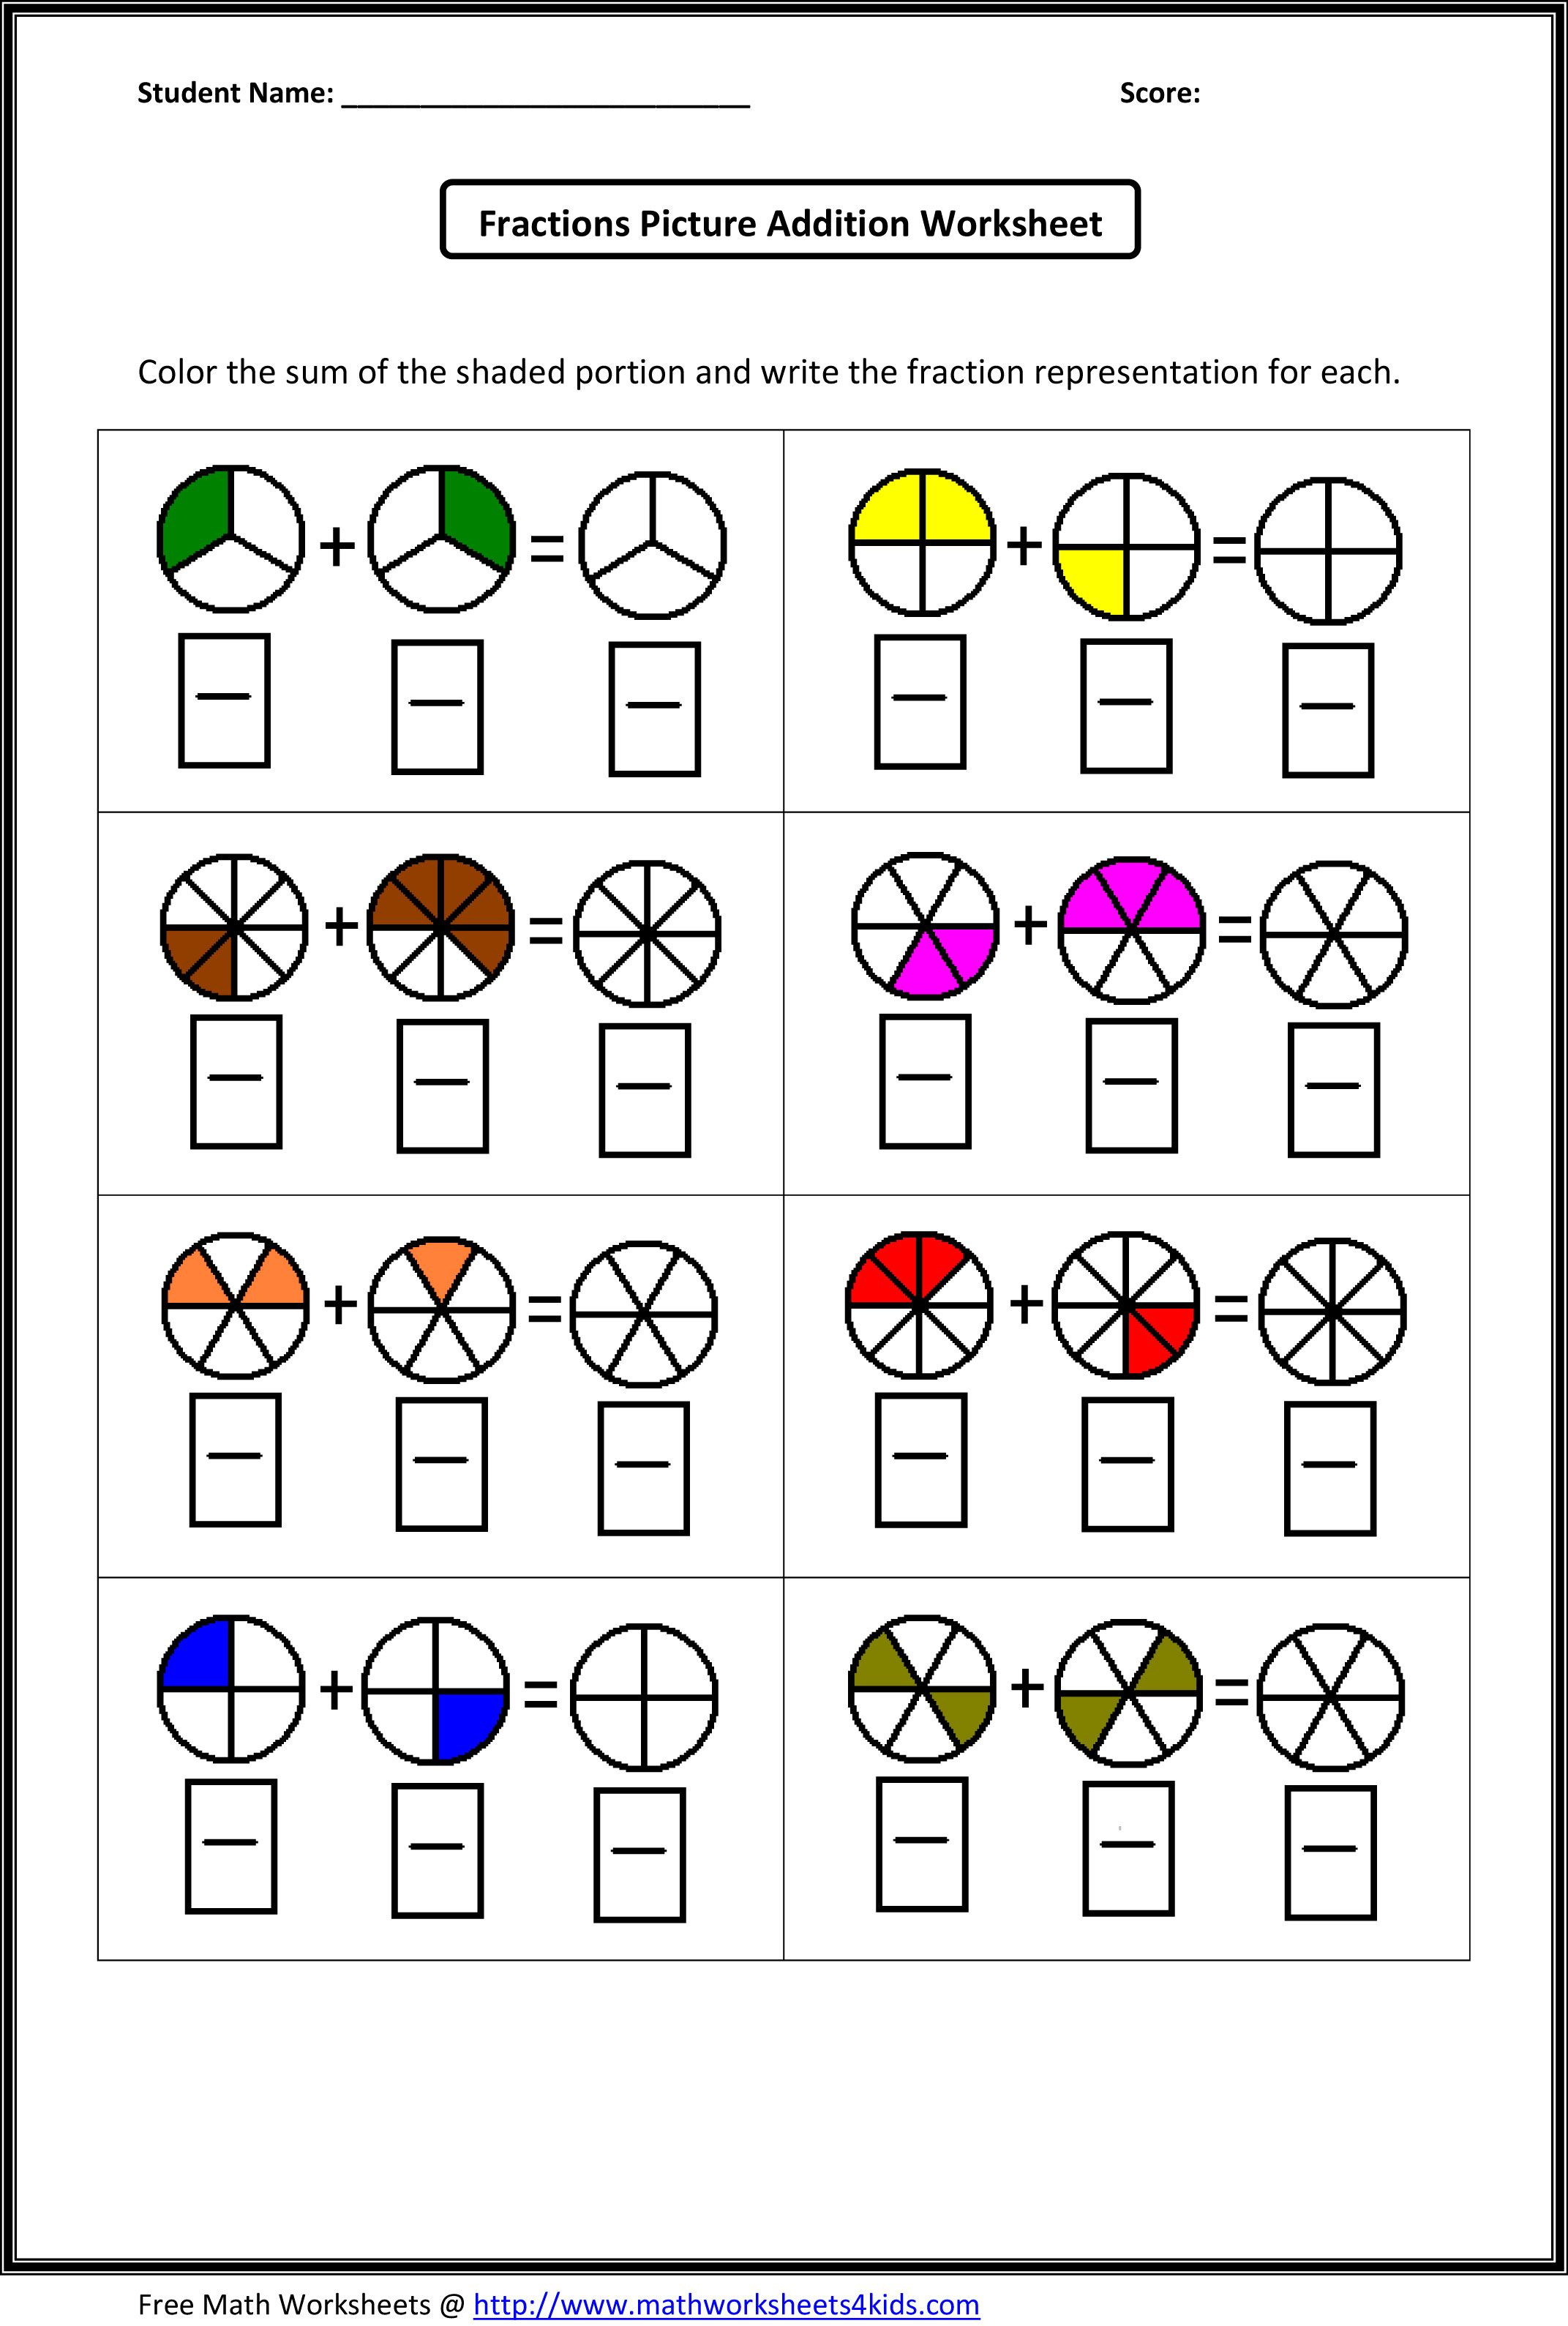 14 Best Fraction Coloring Worksheets 4th Grade Images On